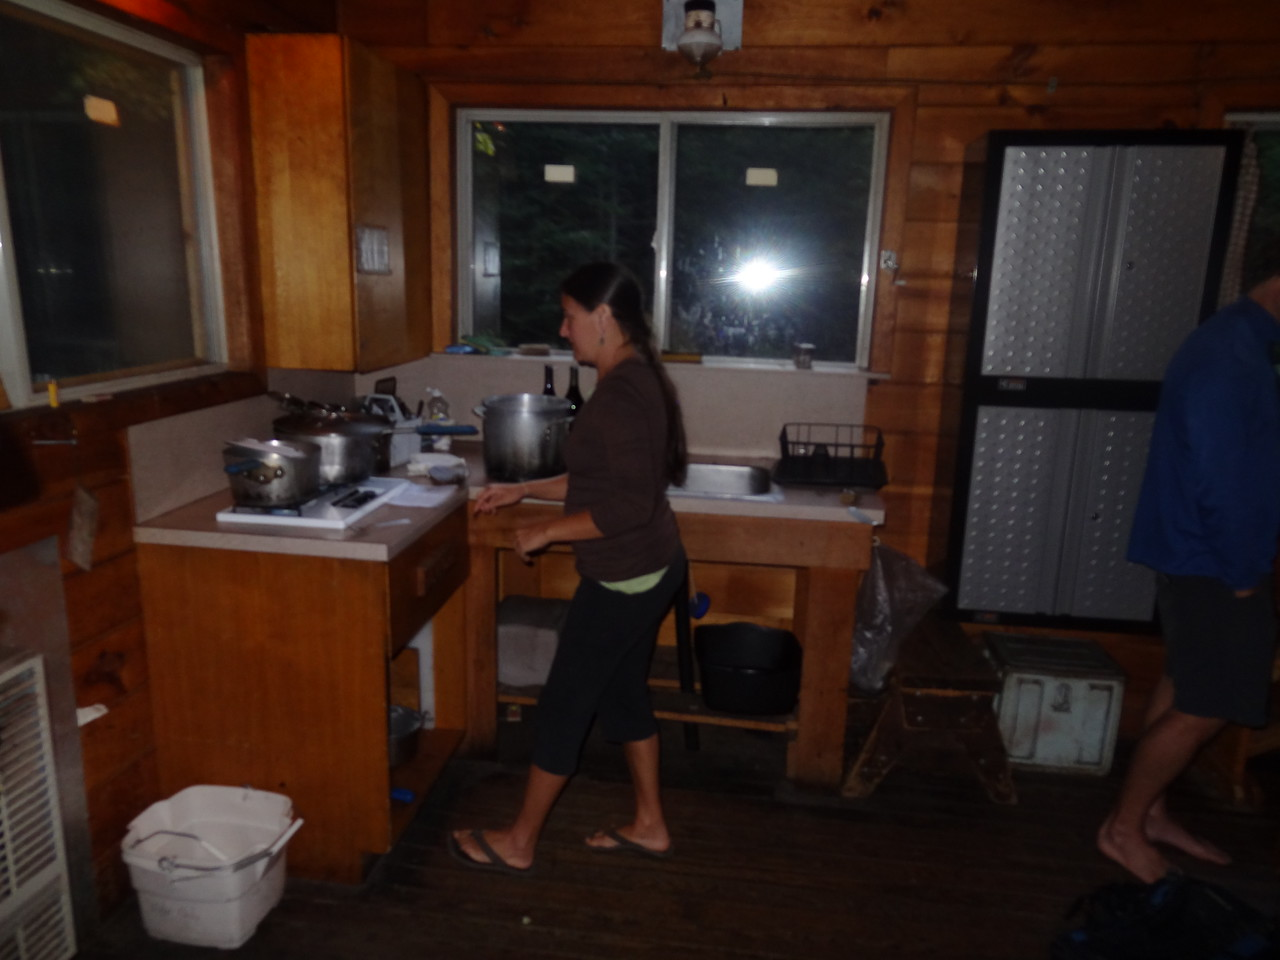 Grace cabin. It was the size of a big 1 car garage, but had all the necessities. Robin is cooking our cous cous on the propane stove. Propane heater is to the left. Propane light above her head, and sink behind her. The sink requires potable water but no need for digging and burying anything.